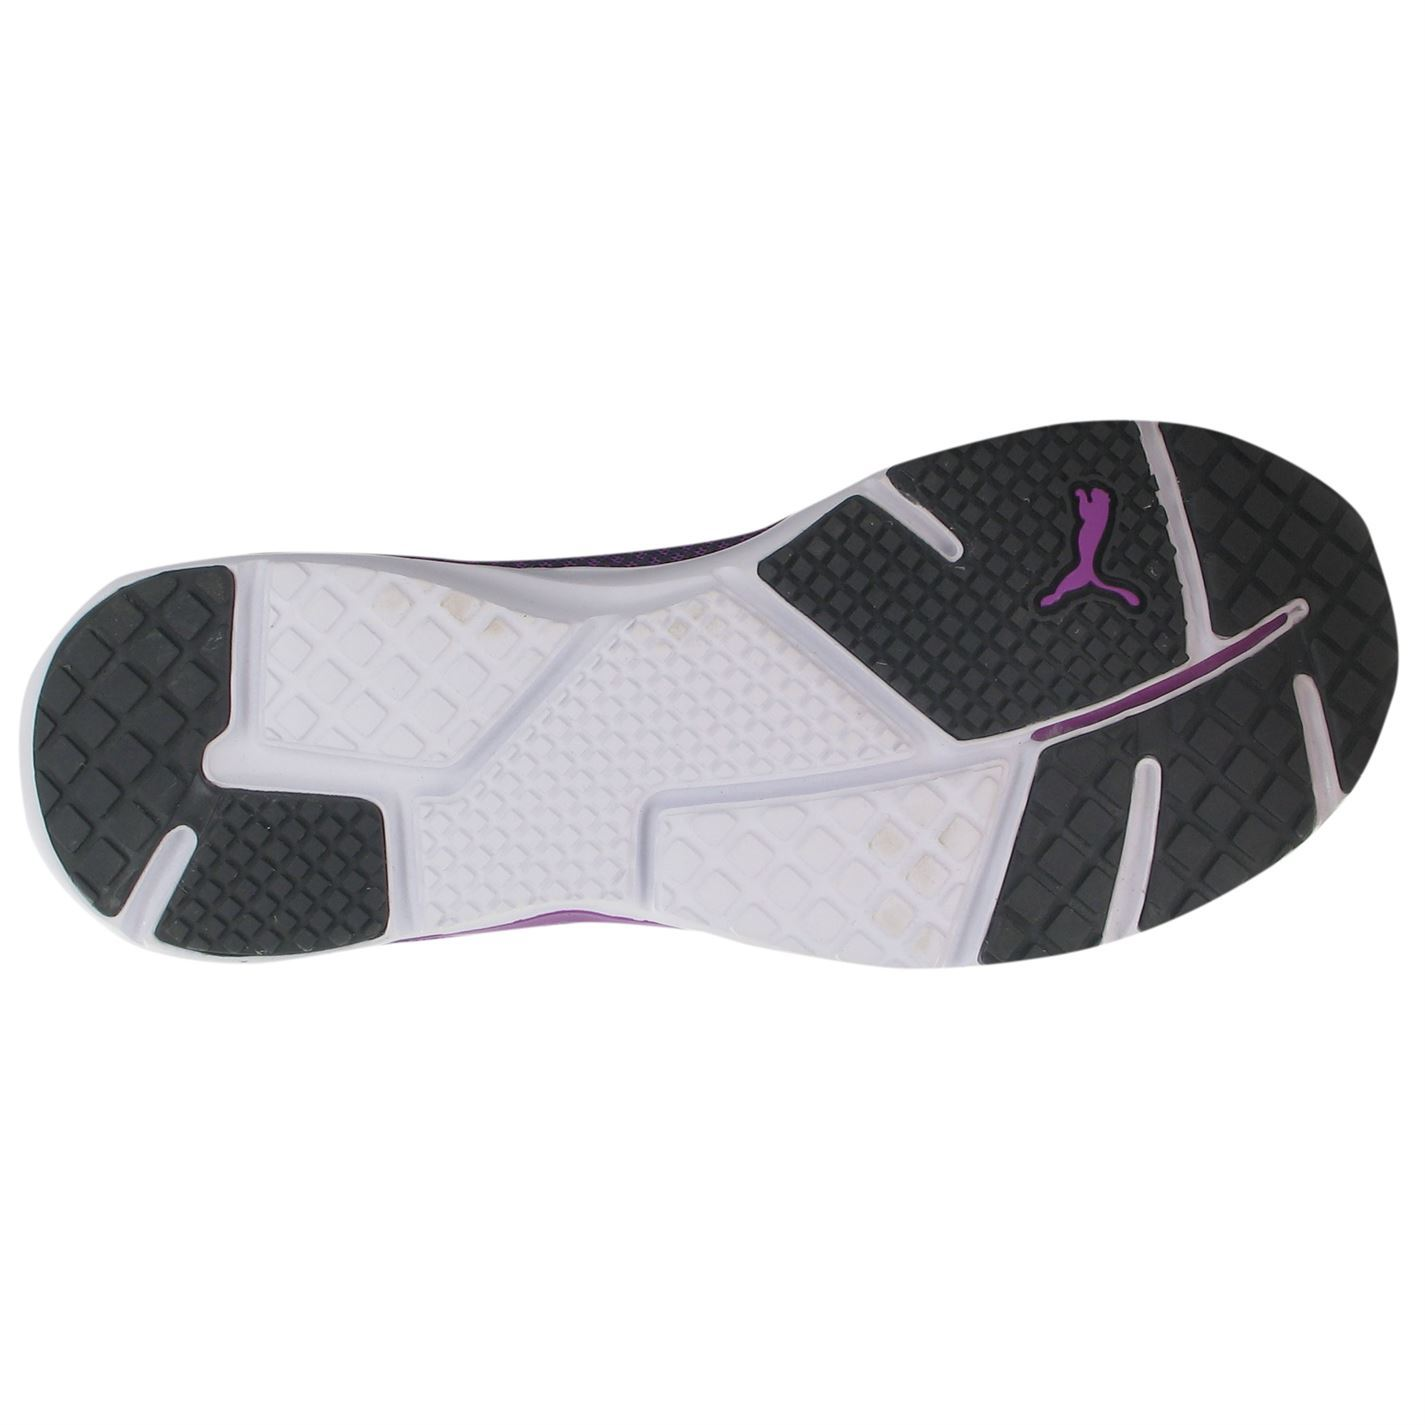 1ffb9f9f386 ... Puma Pulse Flex XT EverFit Running Shoes Womens Grey Purple Trainers  Sneakers